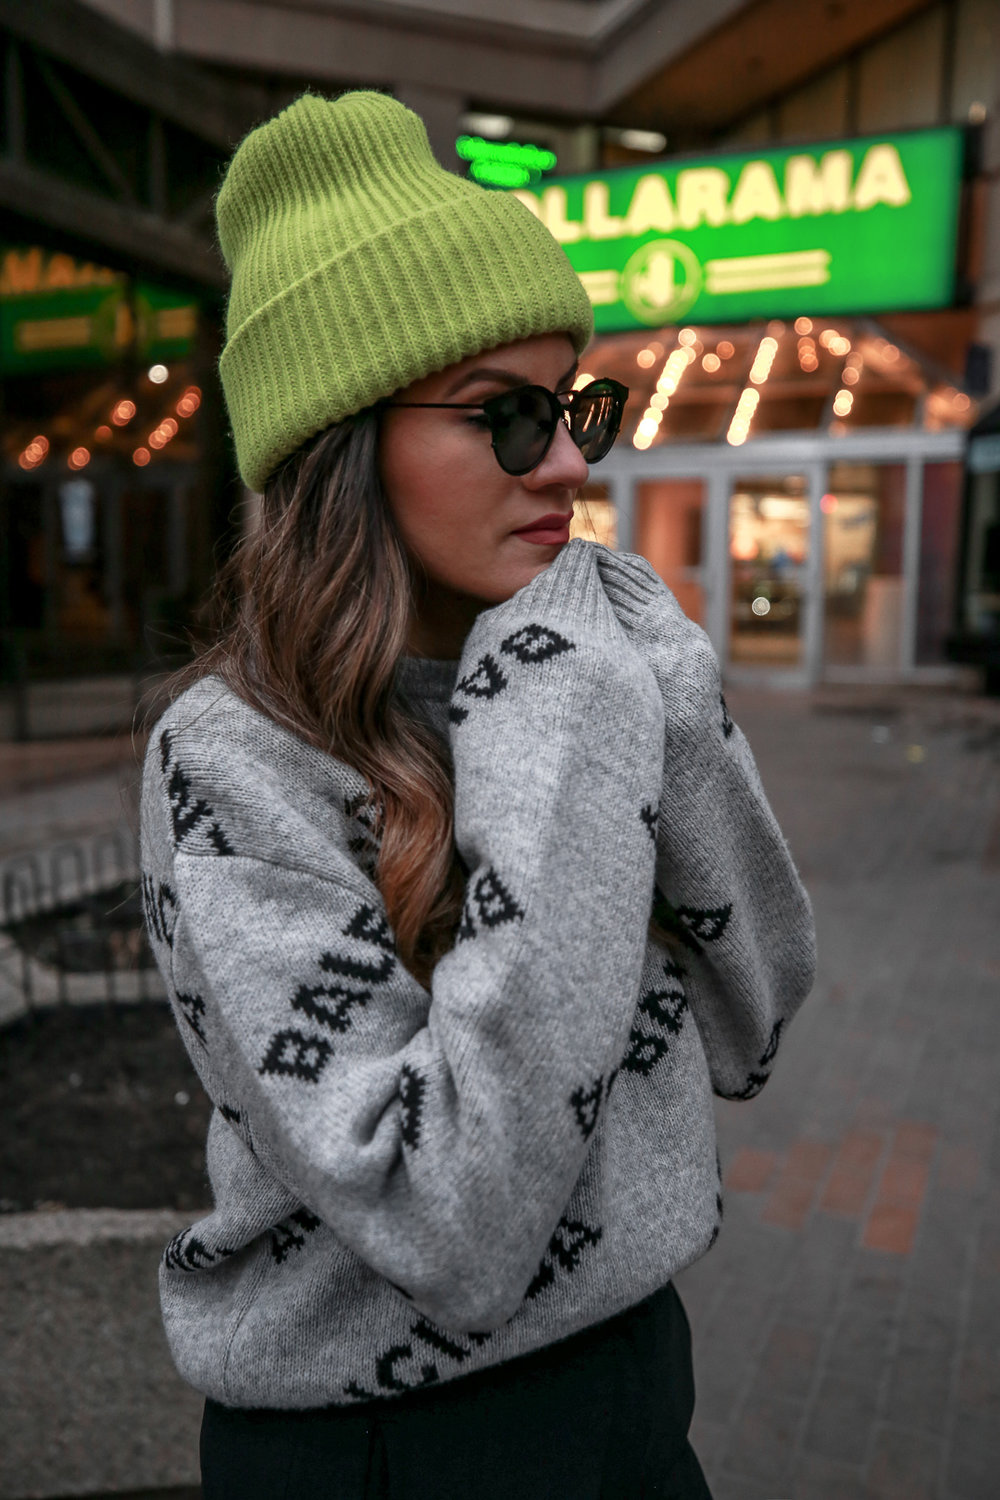 Nathalie Martin wearing Balenciaga cropped logo sweater, Aritzia black Jallade pant, Saint Laurent white canvas court sneakers, Aritzia navy pinstripe Stedman coat, neon green beanie, Bonlook Way sunglasses, street style, woahstyle.com_3936.jpg